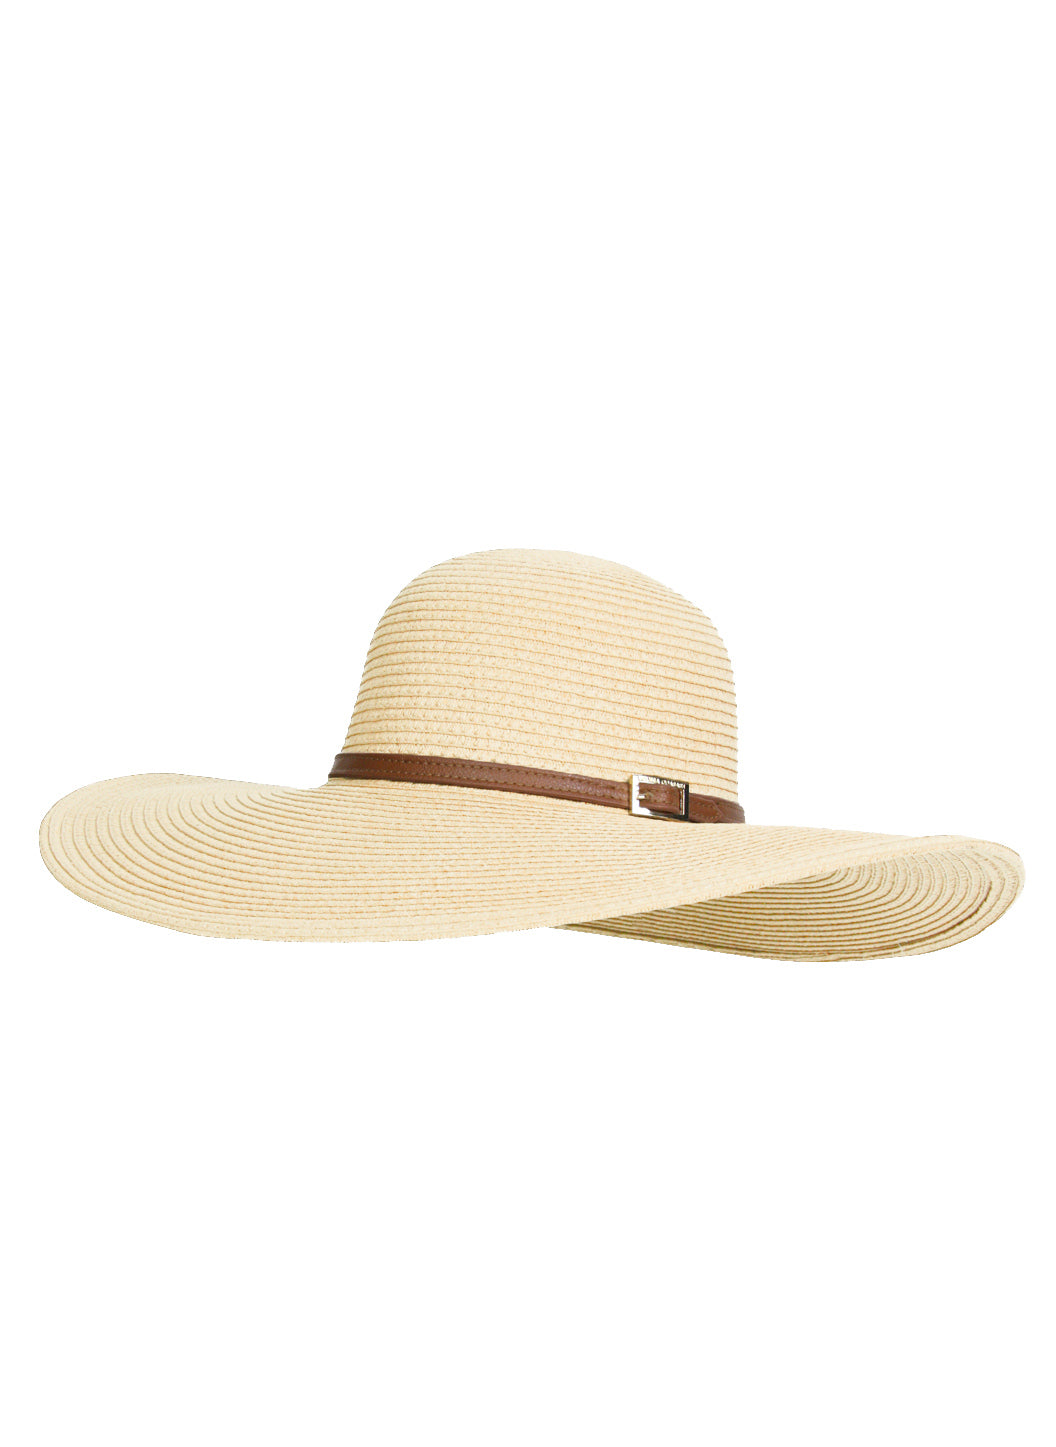 Jemima Wide Brim Beach Hat Cream